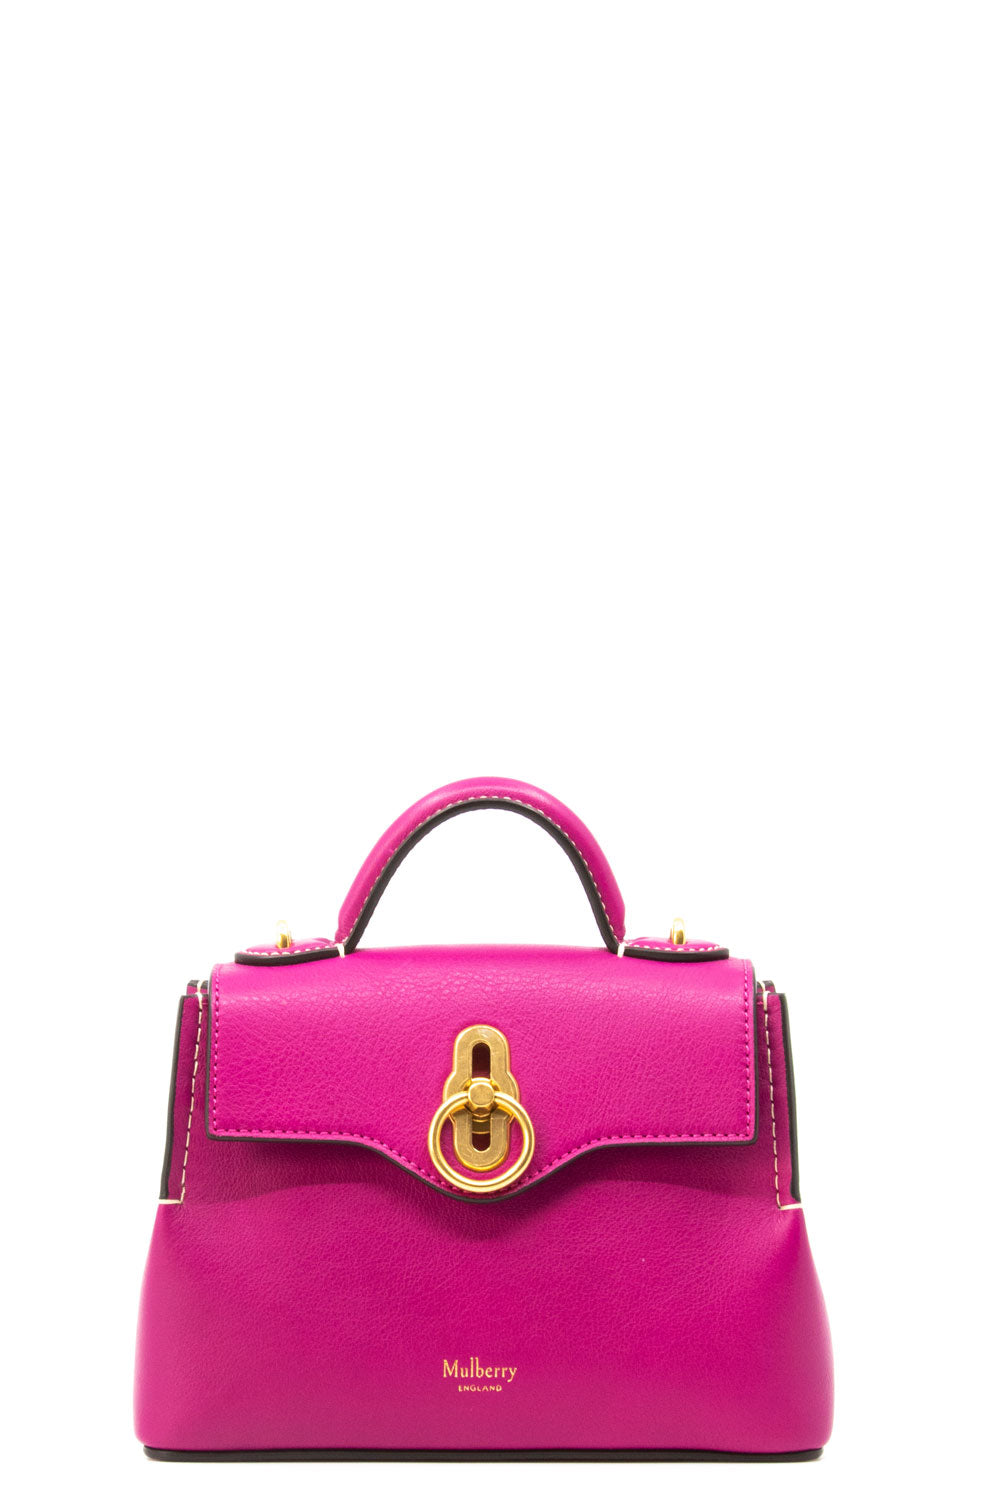 Mulberry Micro Seaton Tasche in Fuchsia.